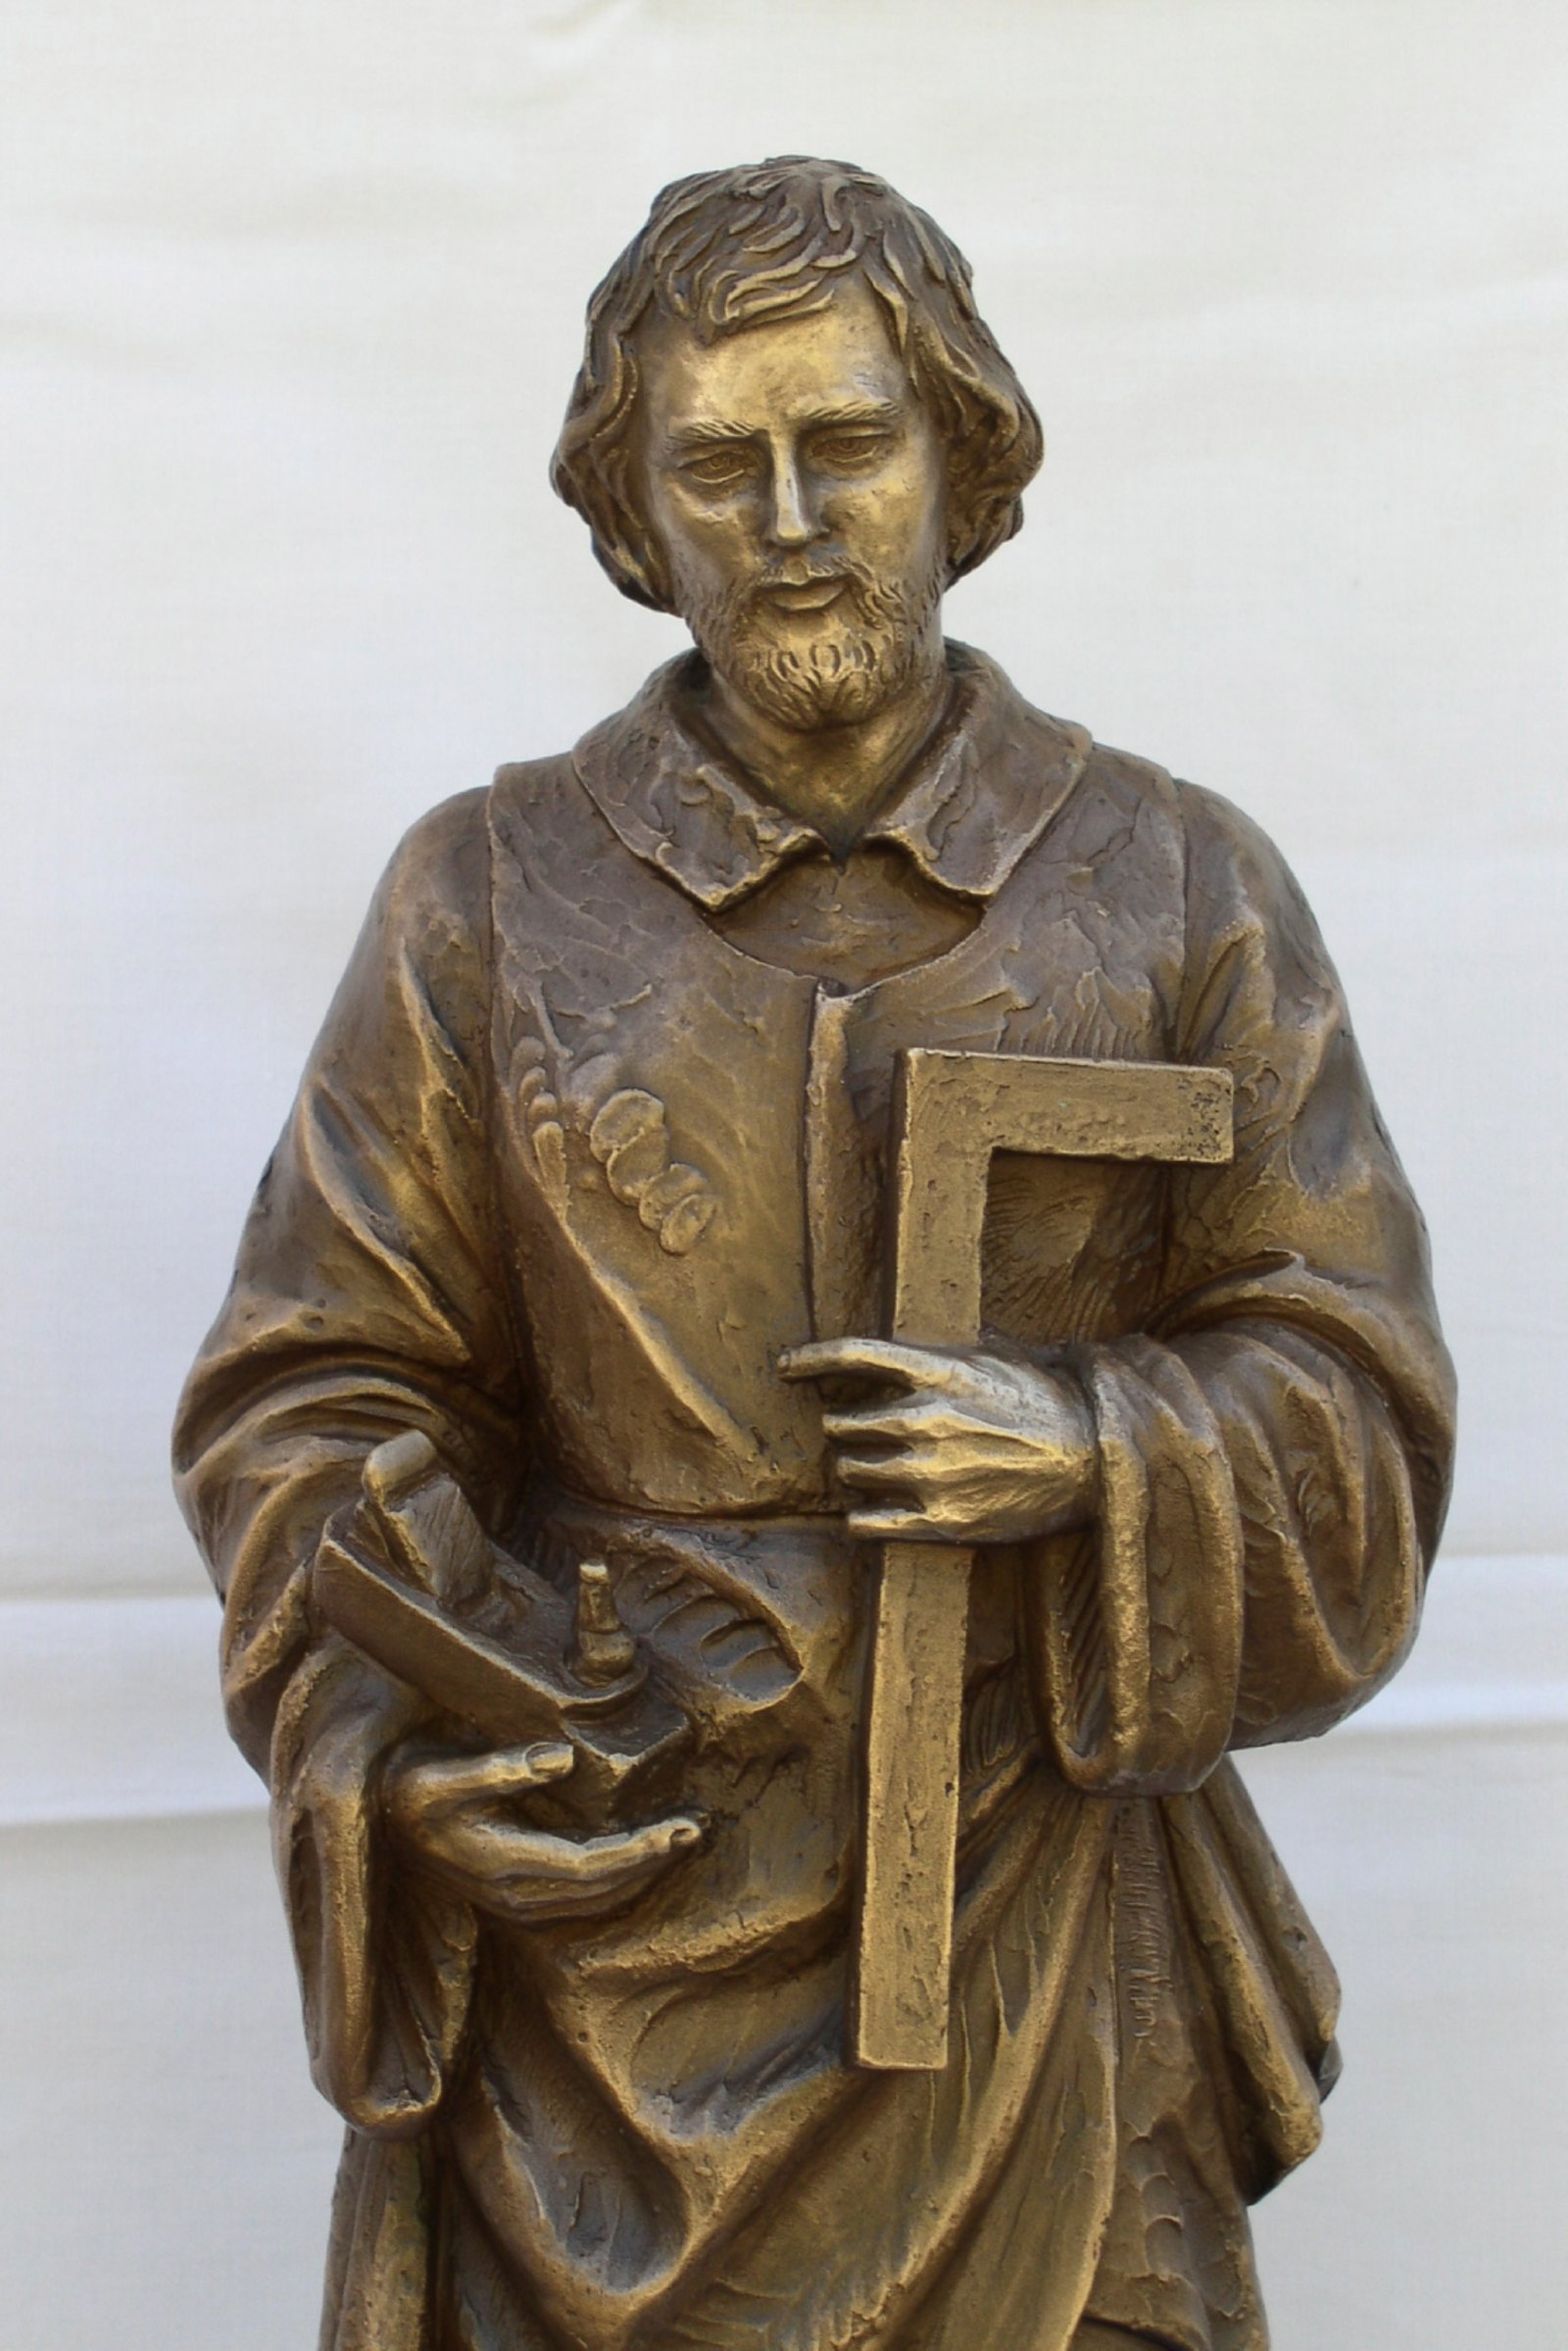 Saint Joseph in bronze